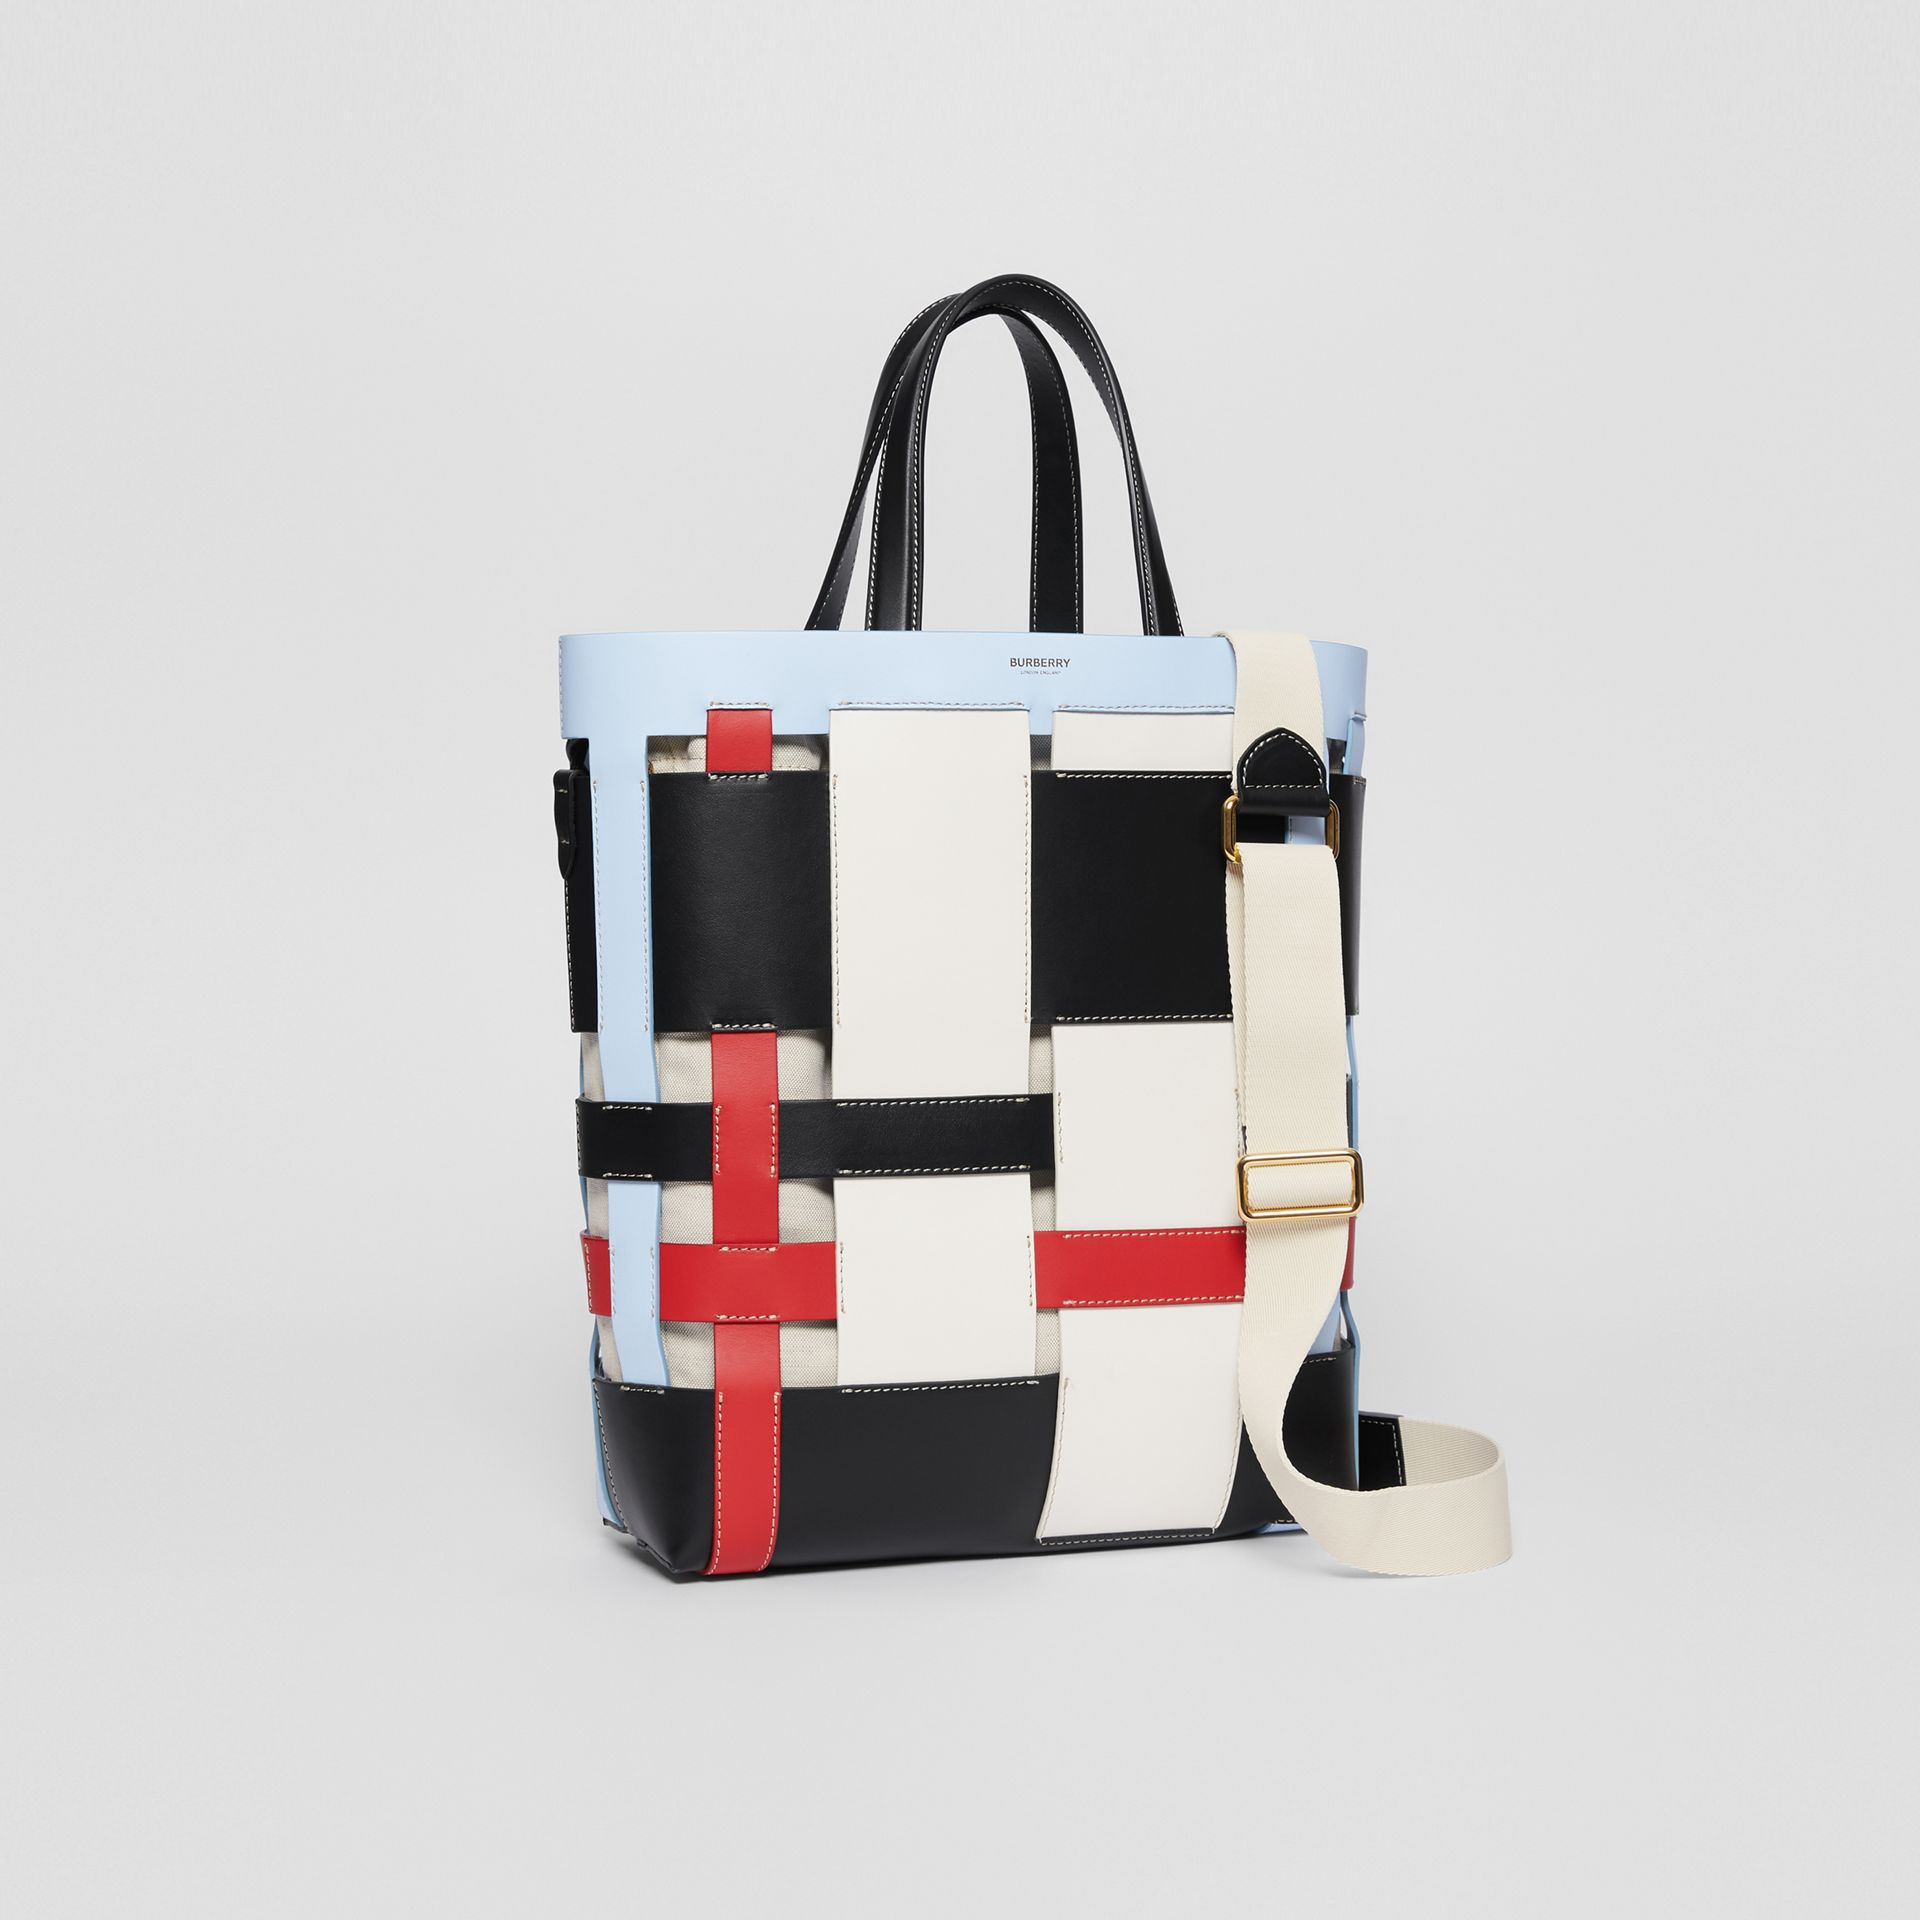 Medium Colour Block Leather Foster Tote in Blue - Women | Burberry - gallery image 6